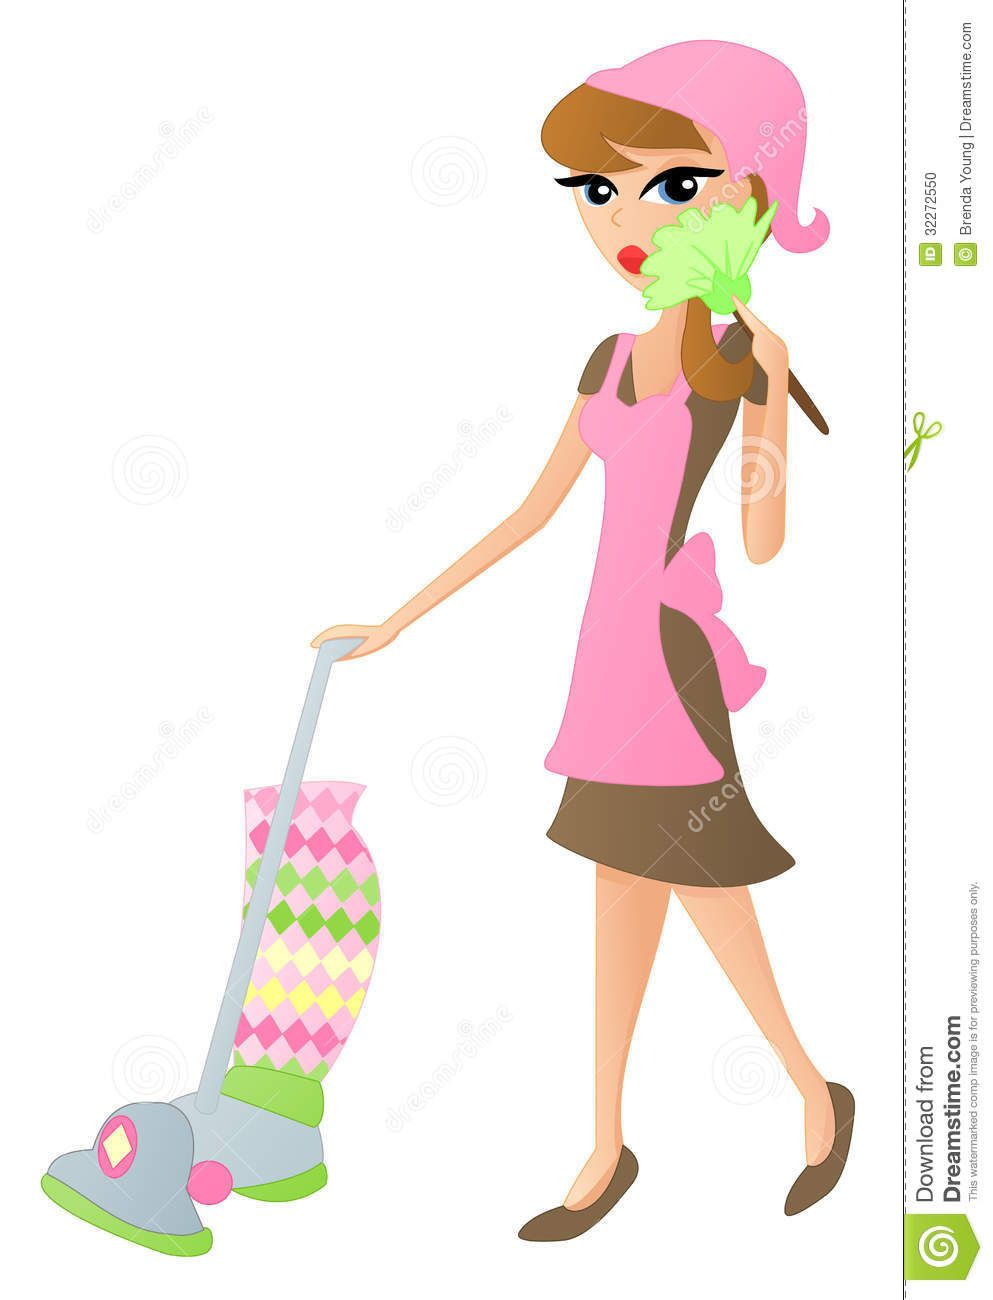 Free Download Cartoon Cleaning Lady Clipart For Your Creation